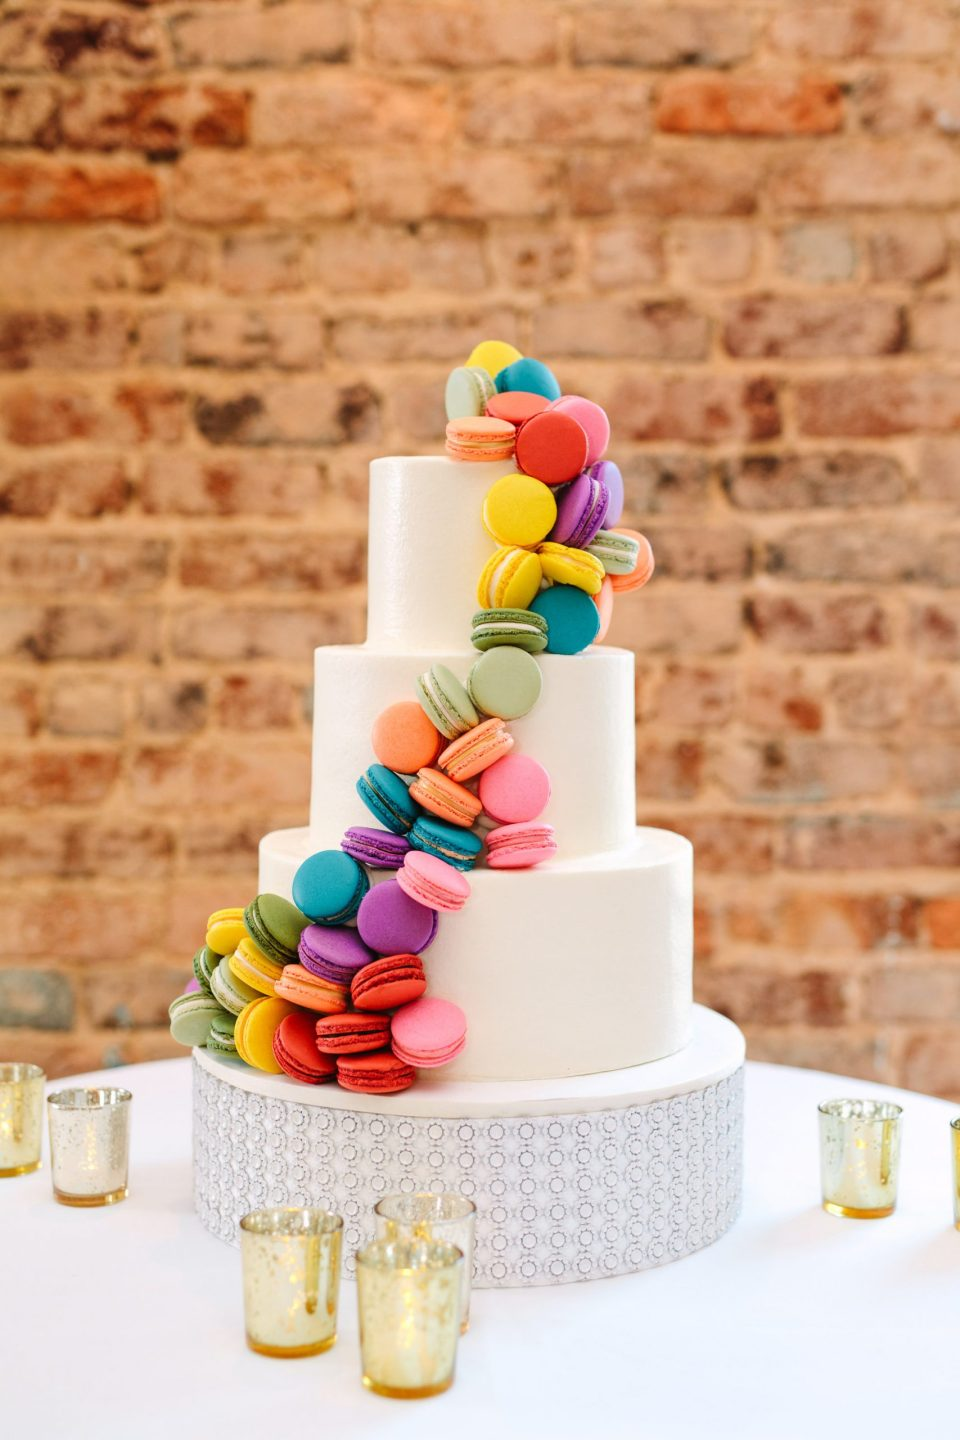 Colorful Macaron cake by Mary Costa Photography